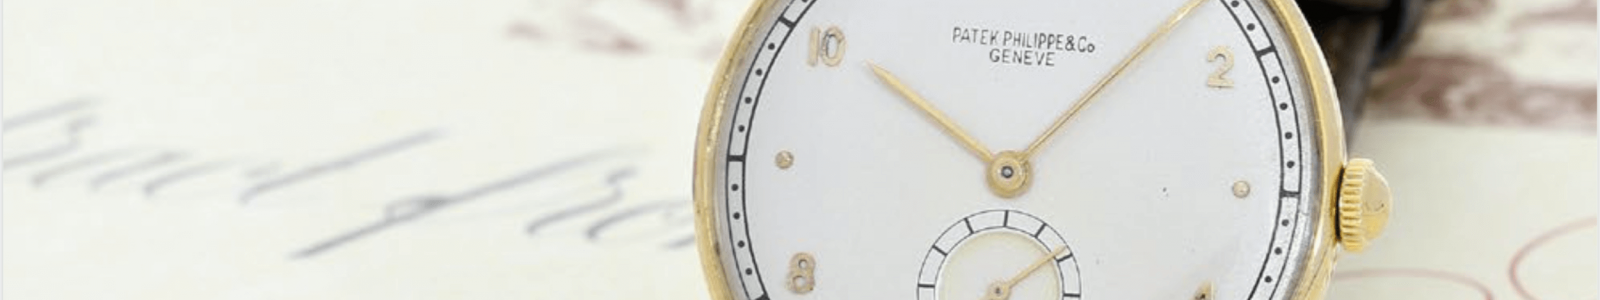 High Quality Wrist Watches And Pocket Watches, Fine Collector's Watch